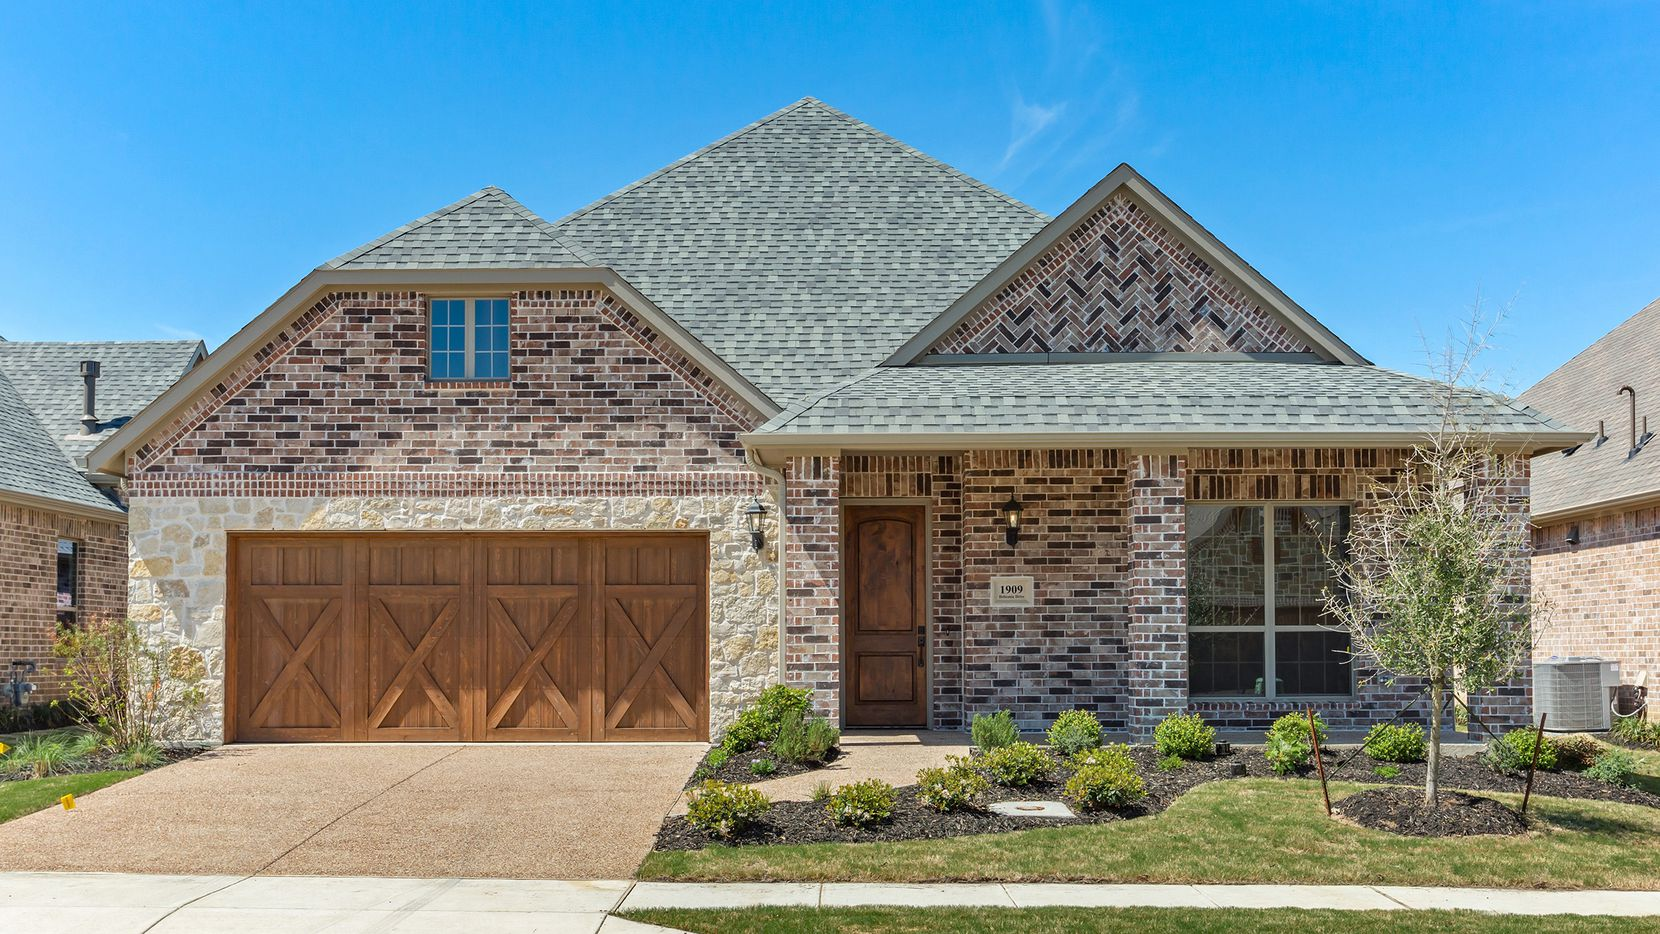 Special incentives are offered on the final move-in-ready homes in Orchard Flower, a 55-plus DFW community.